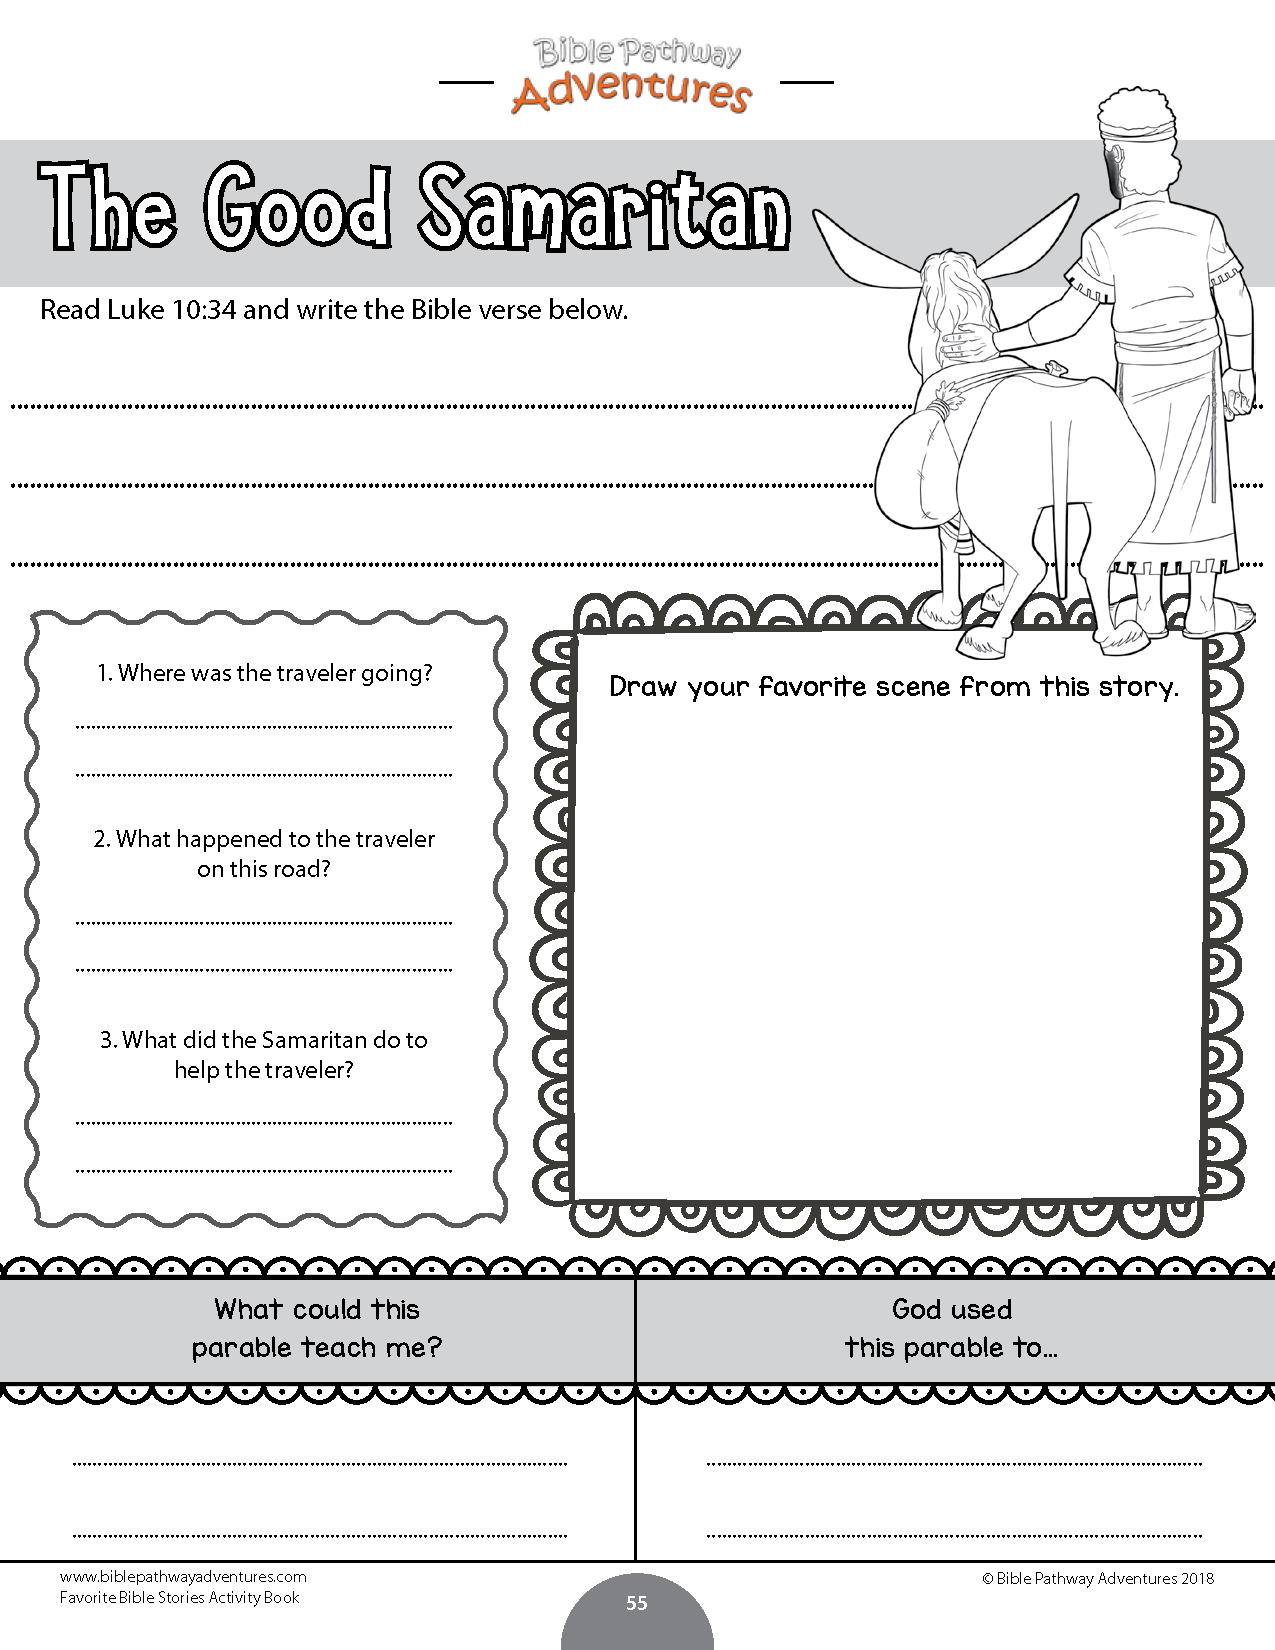 Favorite Bible Stories Coloring Activity Book | Catholic Crafts - Sunday School Activities Free Printables